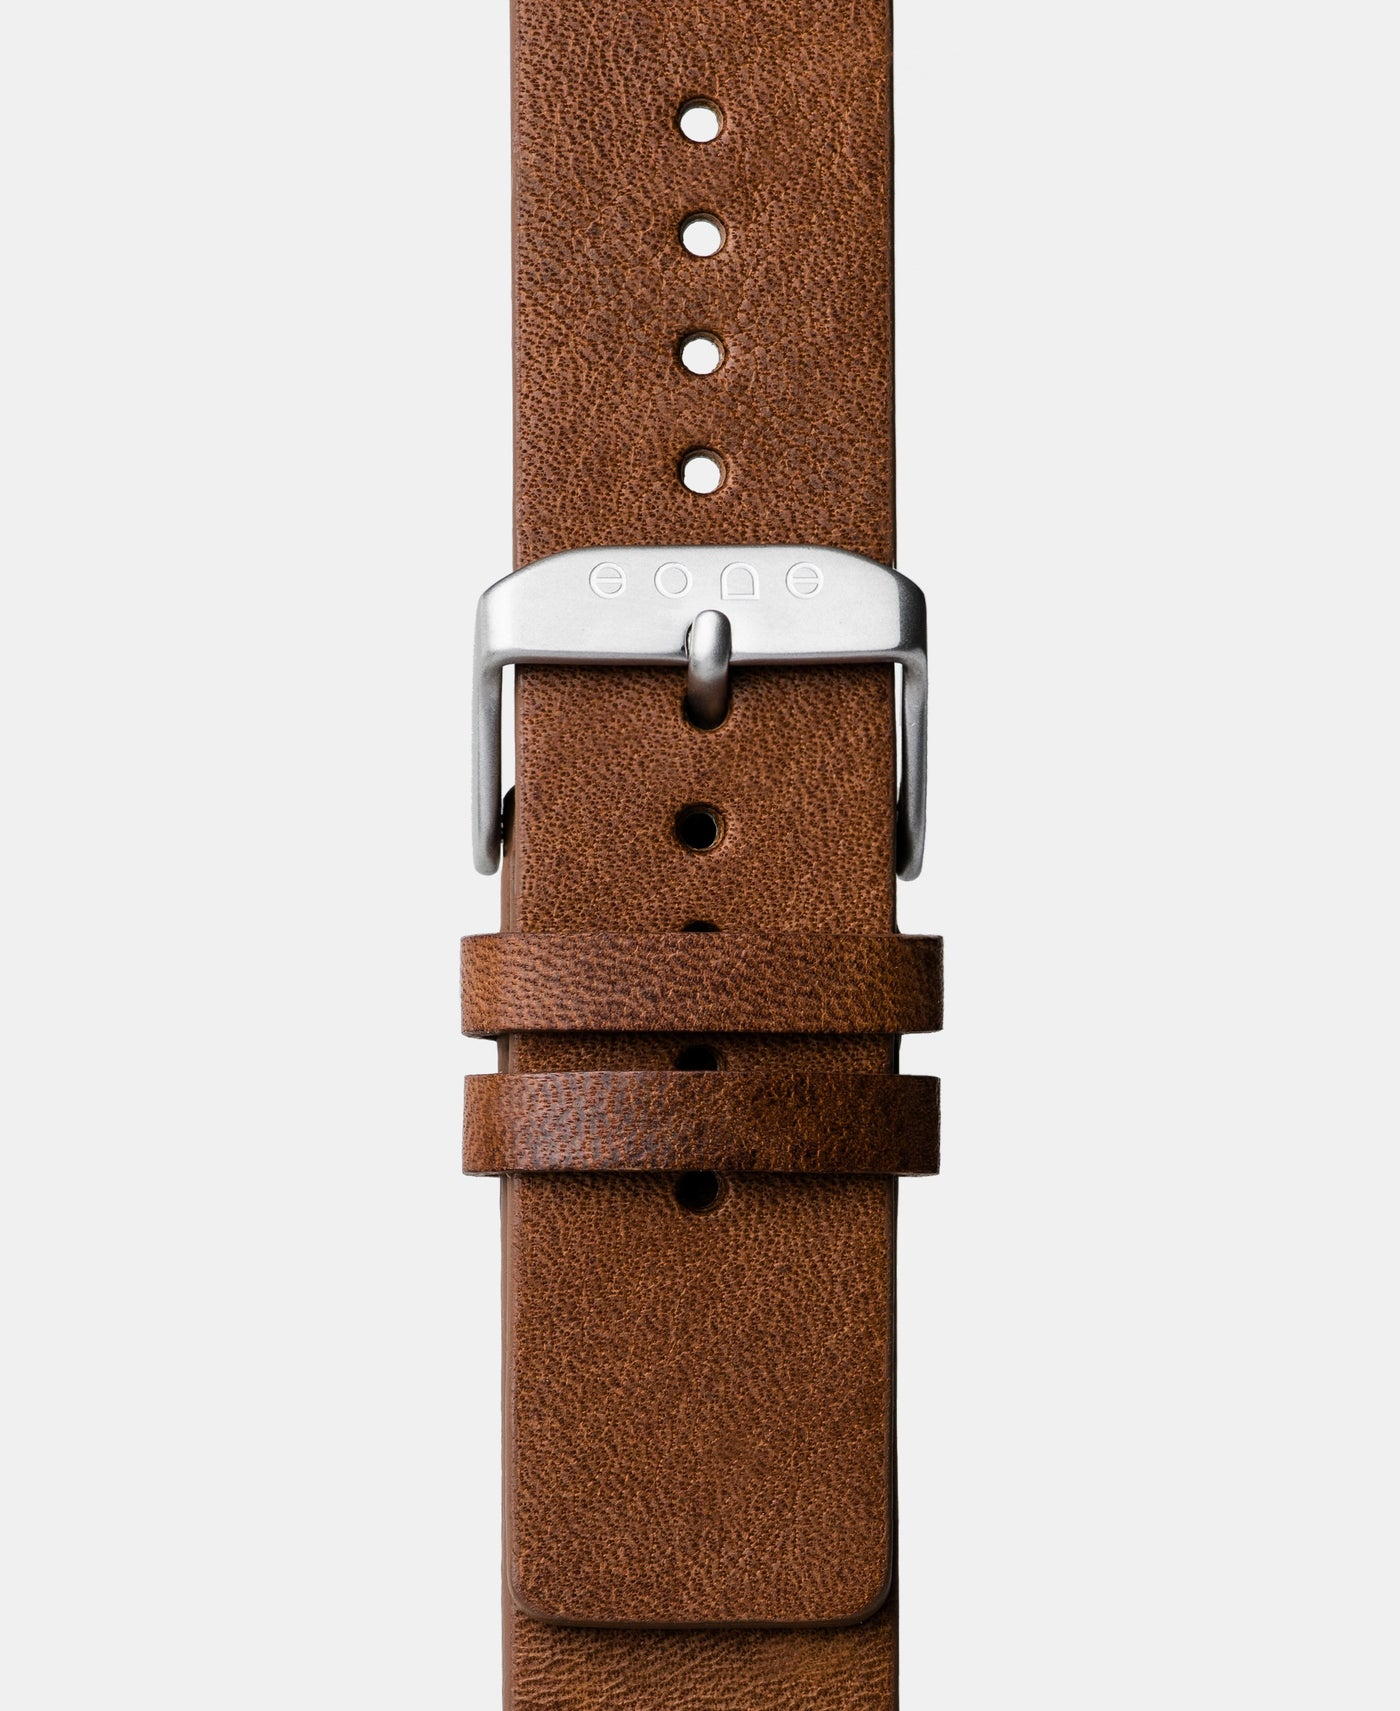 A photo shows the strap lying on a flat surface. One part has a buckle and the other part has a series of holes for an adjustable fit.